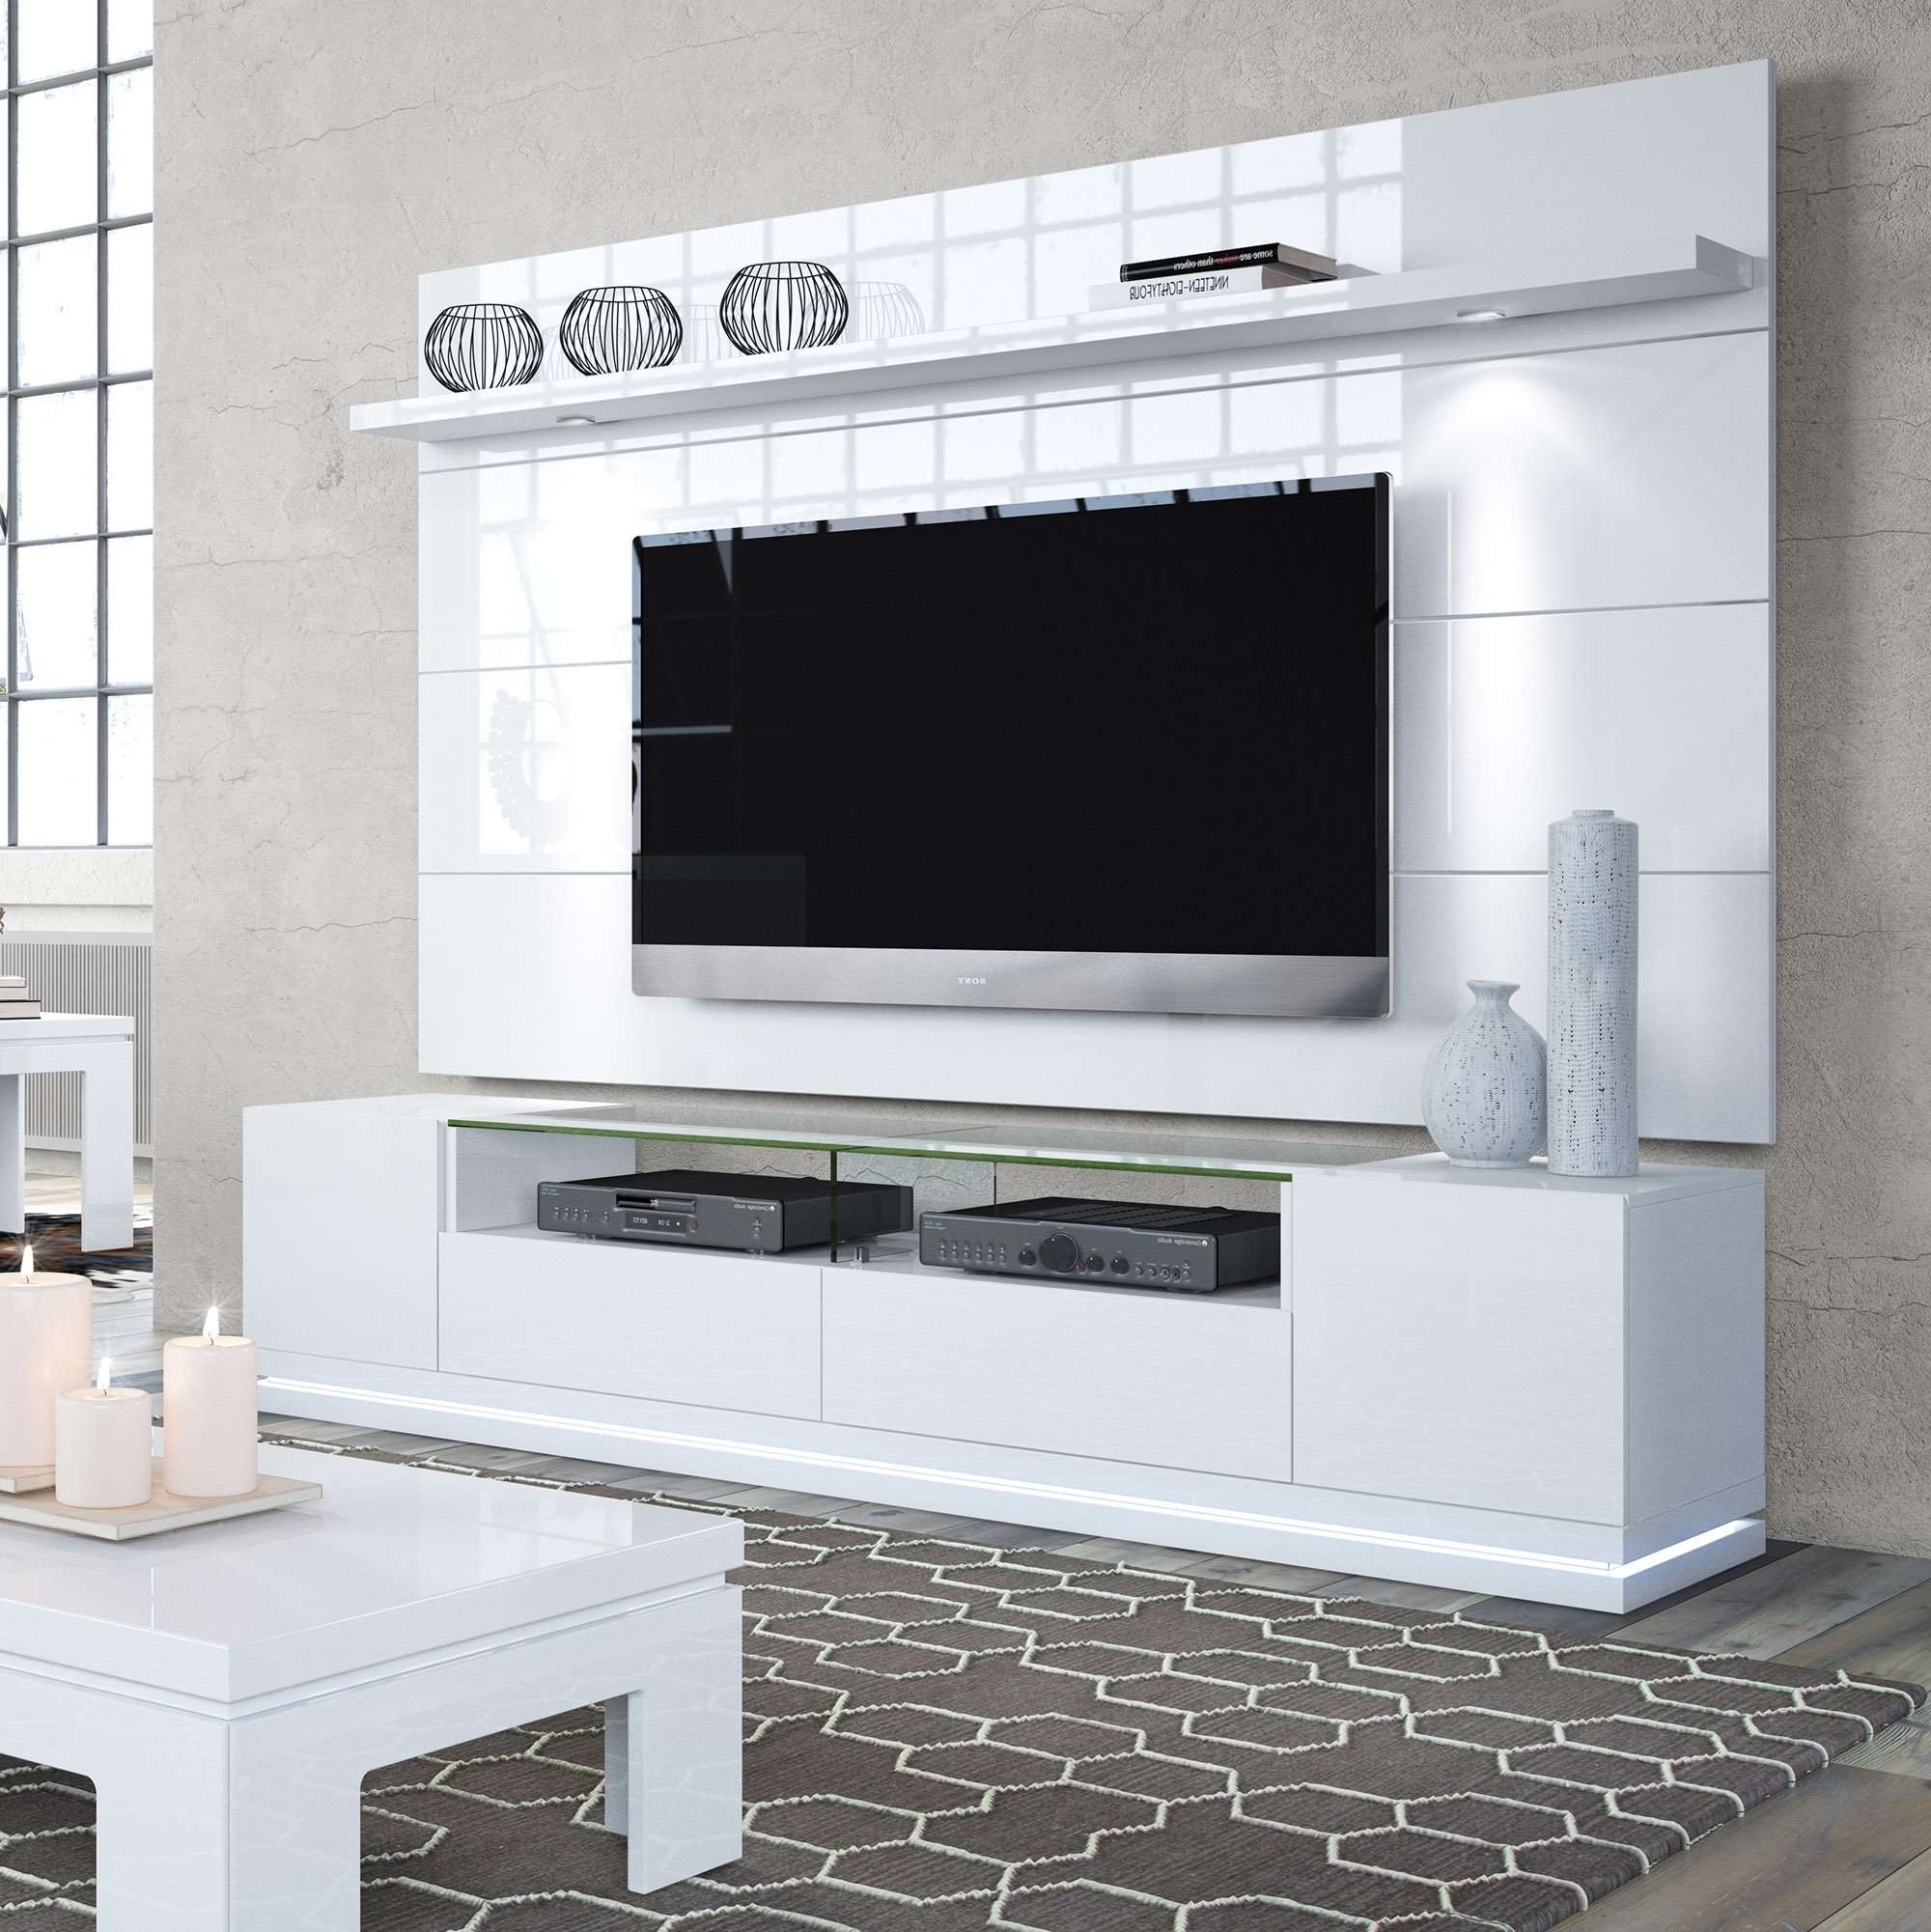 Vanderbilt White Gloss Tv Stand & Cabrini 2.2 Floating Wall Tv Within Gloss White Tv Cabinets (Gallery 7 of 20)